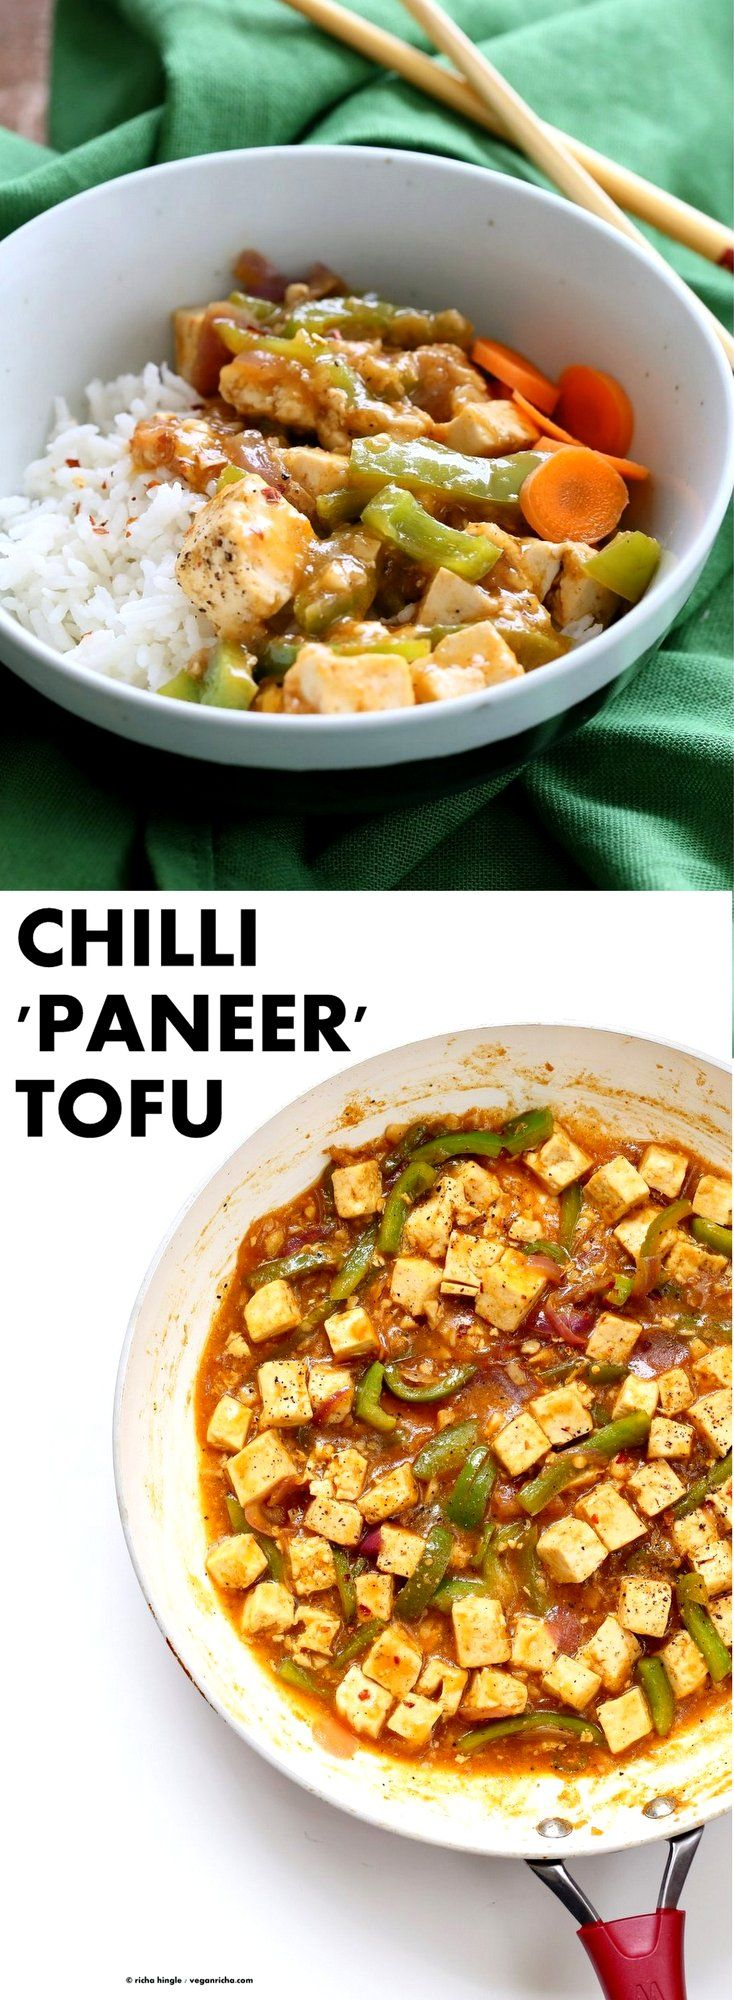 "Chilli Tofu - Indian Chilli ""Paneer"" Recipe. Chilli Paneer is an Indo-chinese fusion stir fry served with other fusion noodles or fried rice. Crisp Tofu replaces the Paneer cheese in this delicious and quick version. Vegan Gluten-free Nut-free Recipe 